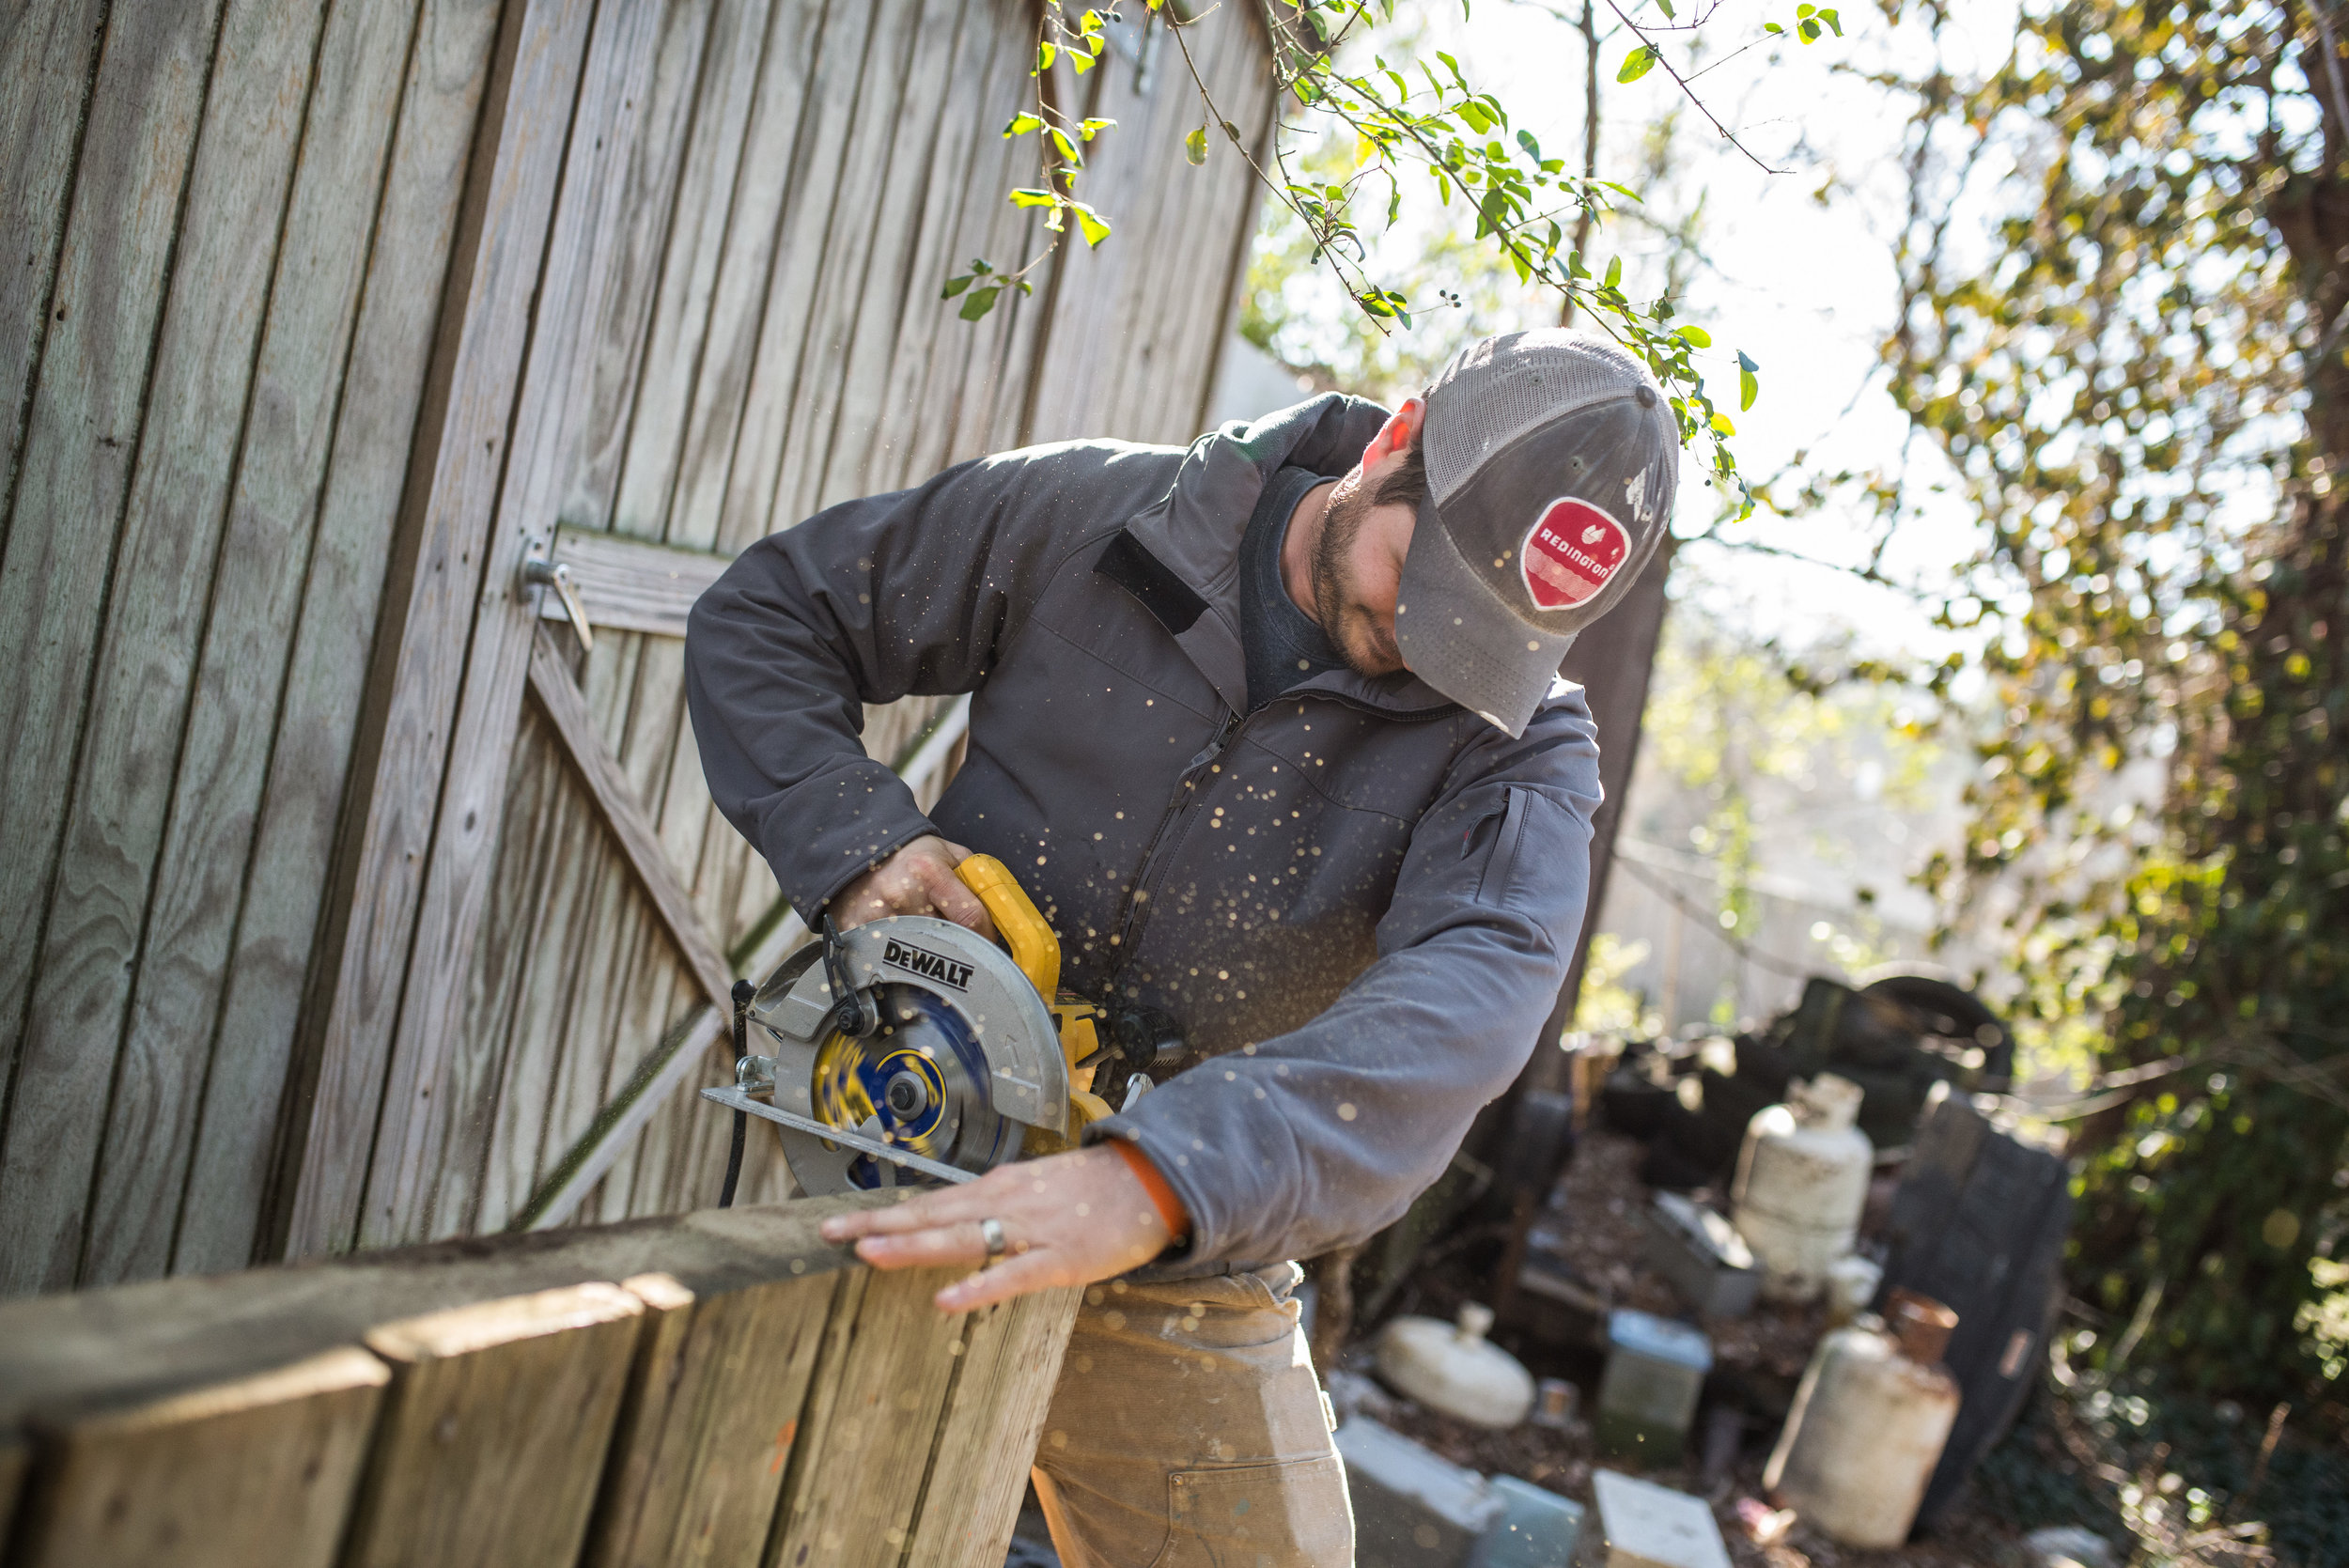 Cameron Kagay works for MCH Nashville, but has also volunteered his services for neighbors in Hopewell. This kind of generosity of heart is evidence of working as though the Lord is watching.